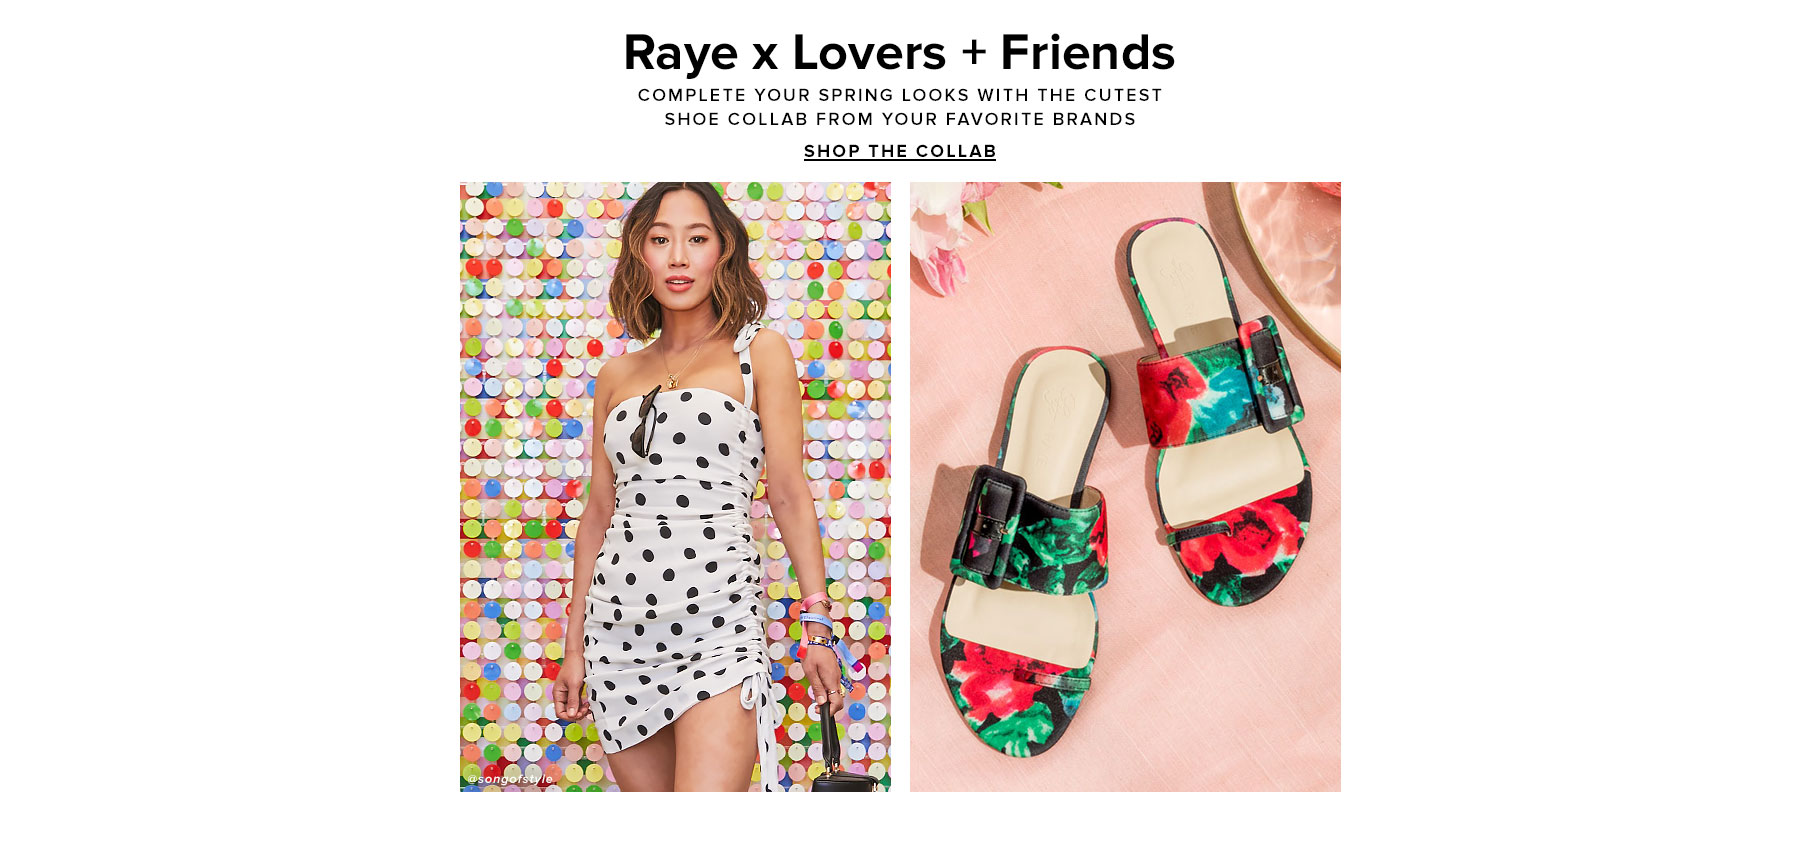 Raye x Lovers + Friends. Complete your spring looks with the cutest shoe collab from your favorite brands. Shop the collab.